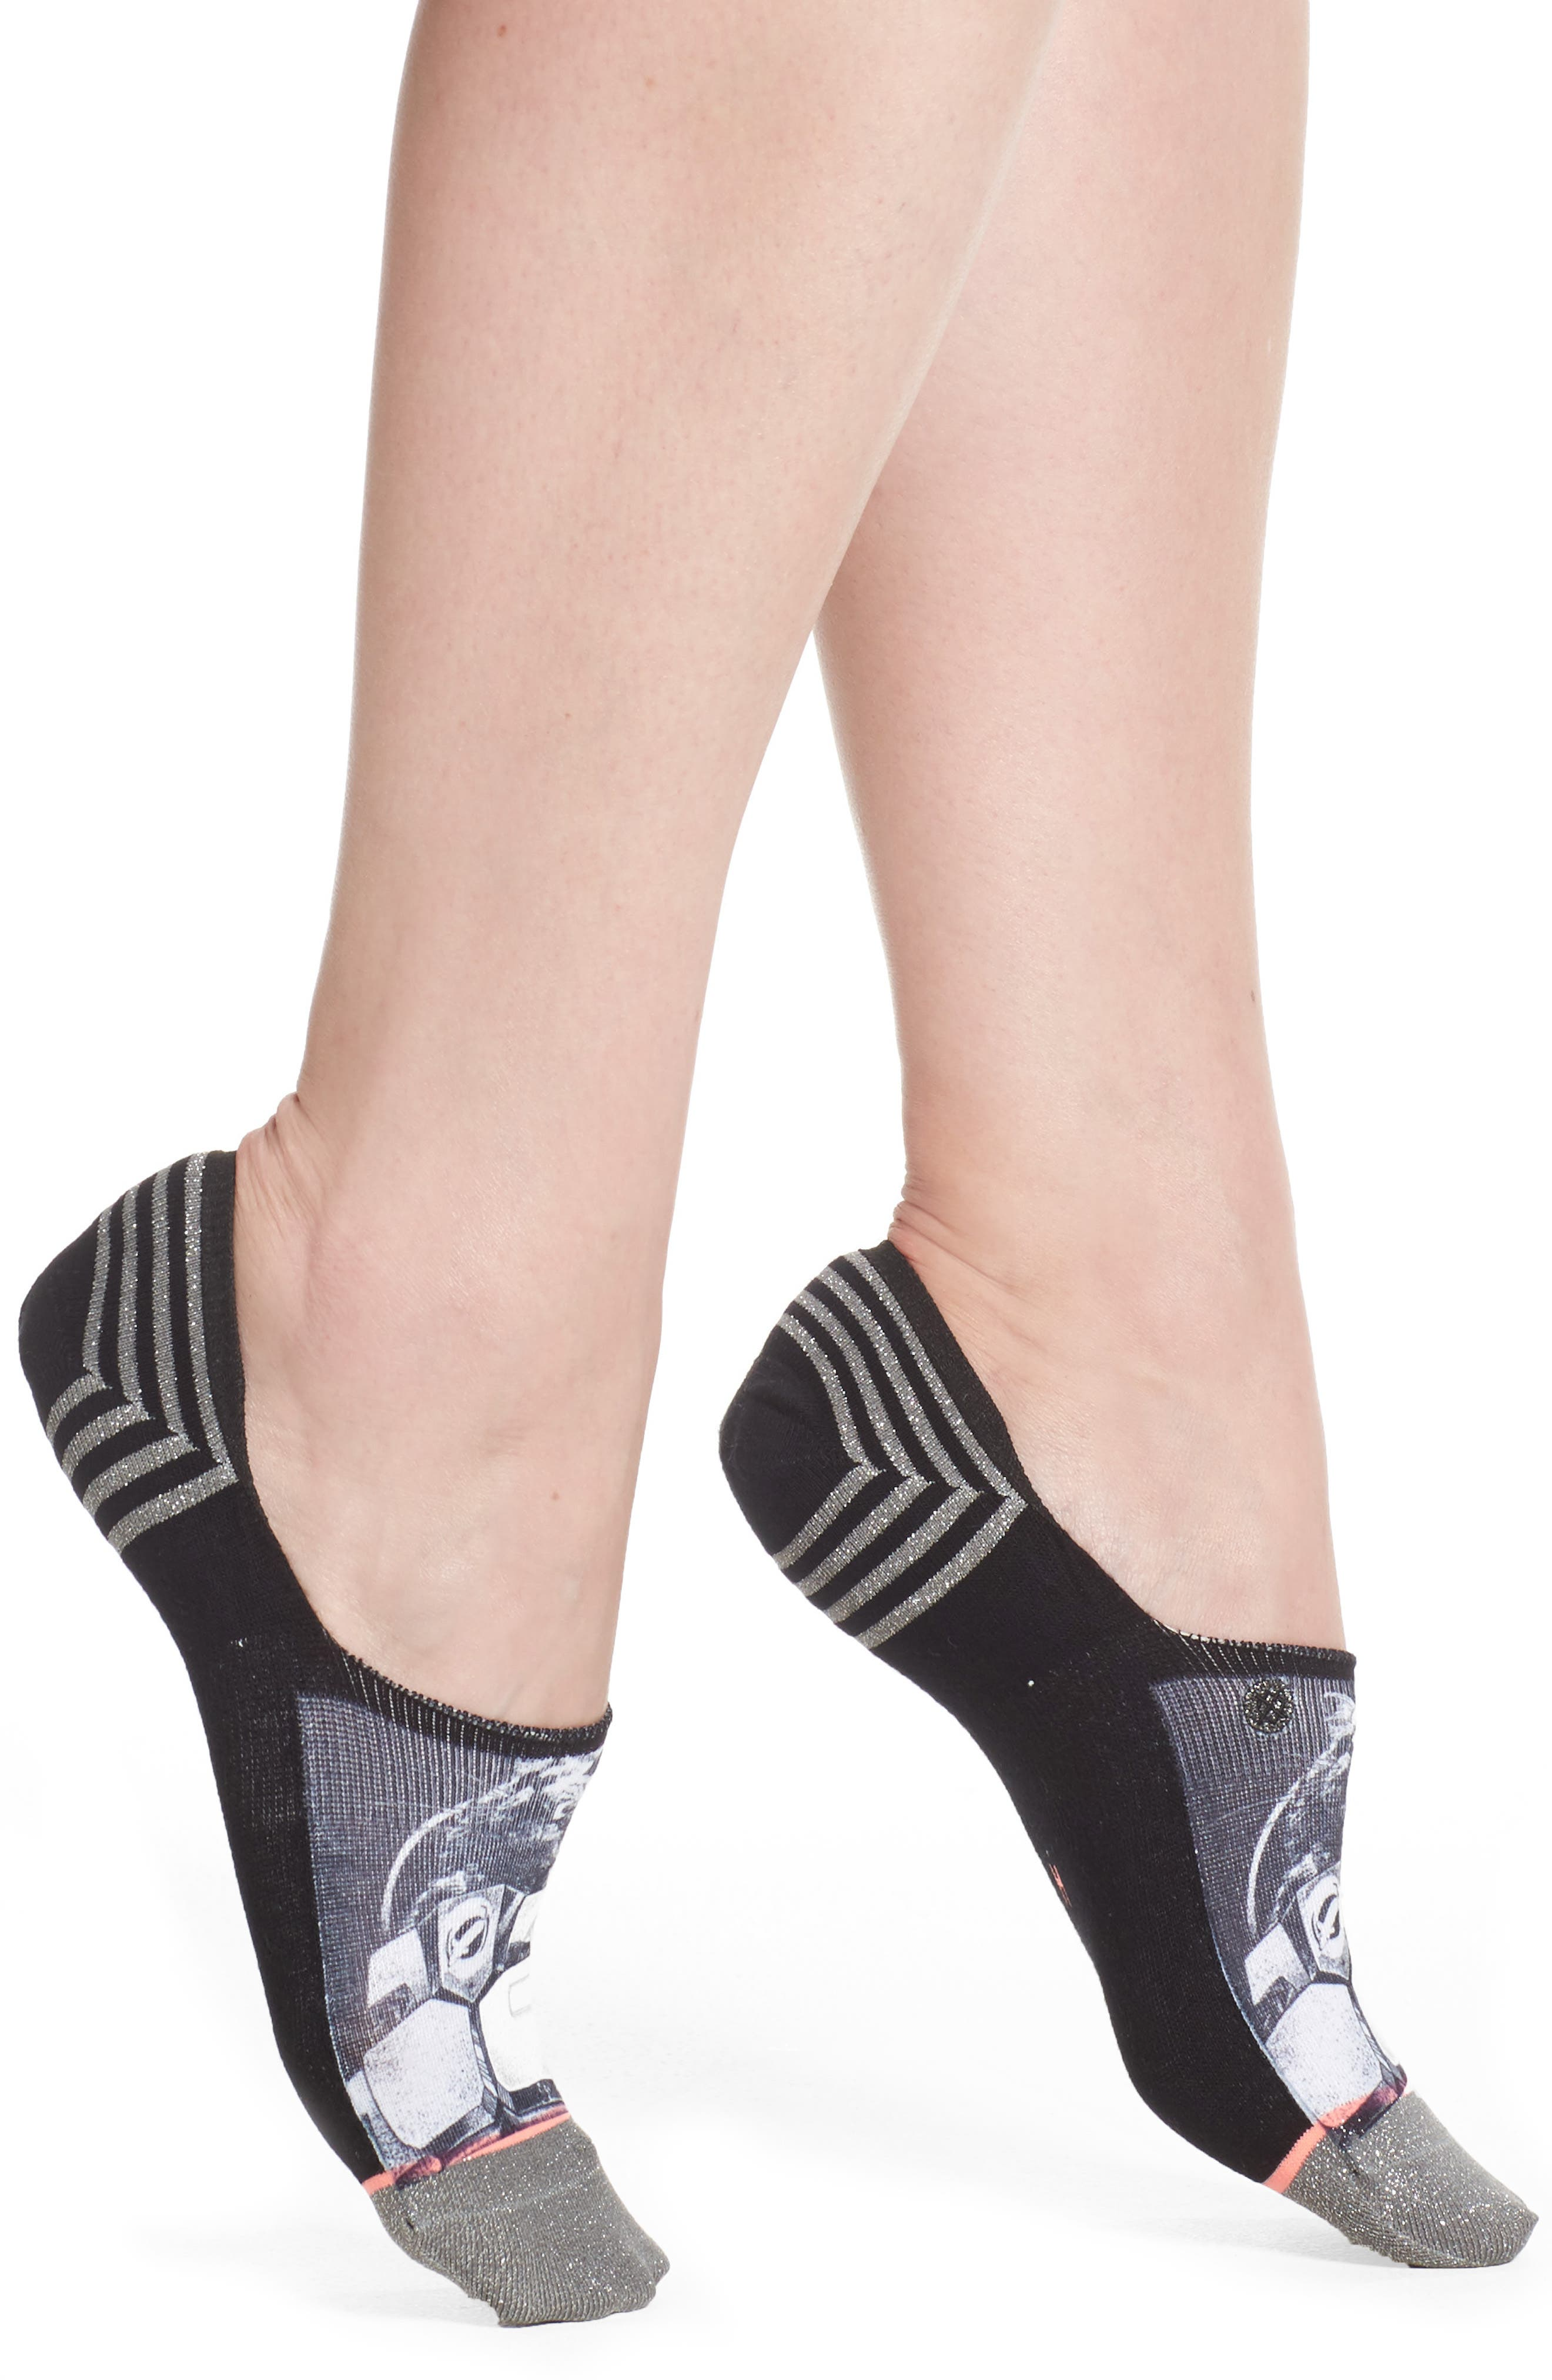 Moonwalker Super Invisible No-Show Socks,                             Main thumbnail 1, color,                             001